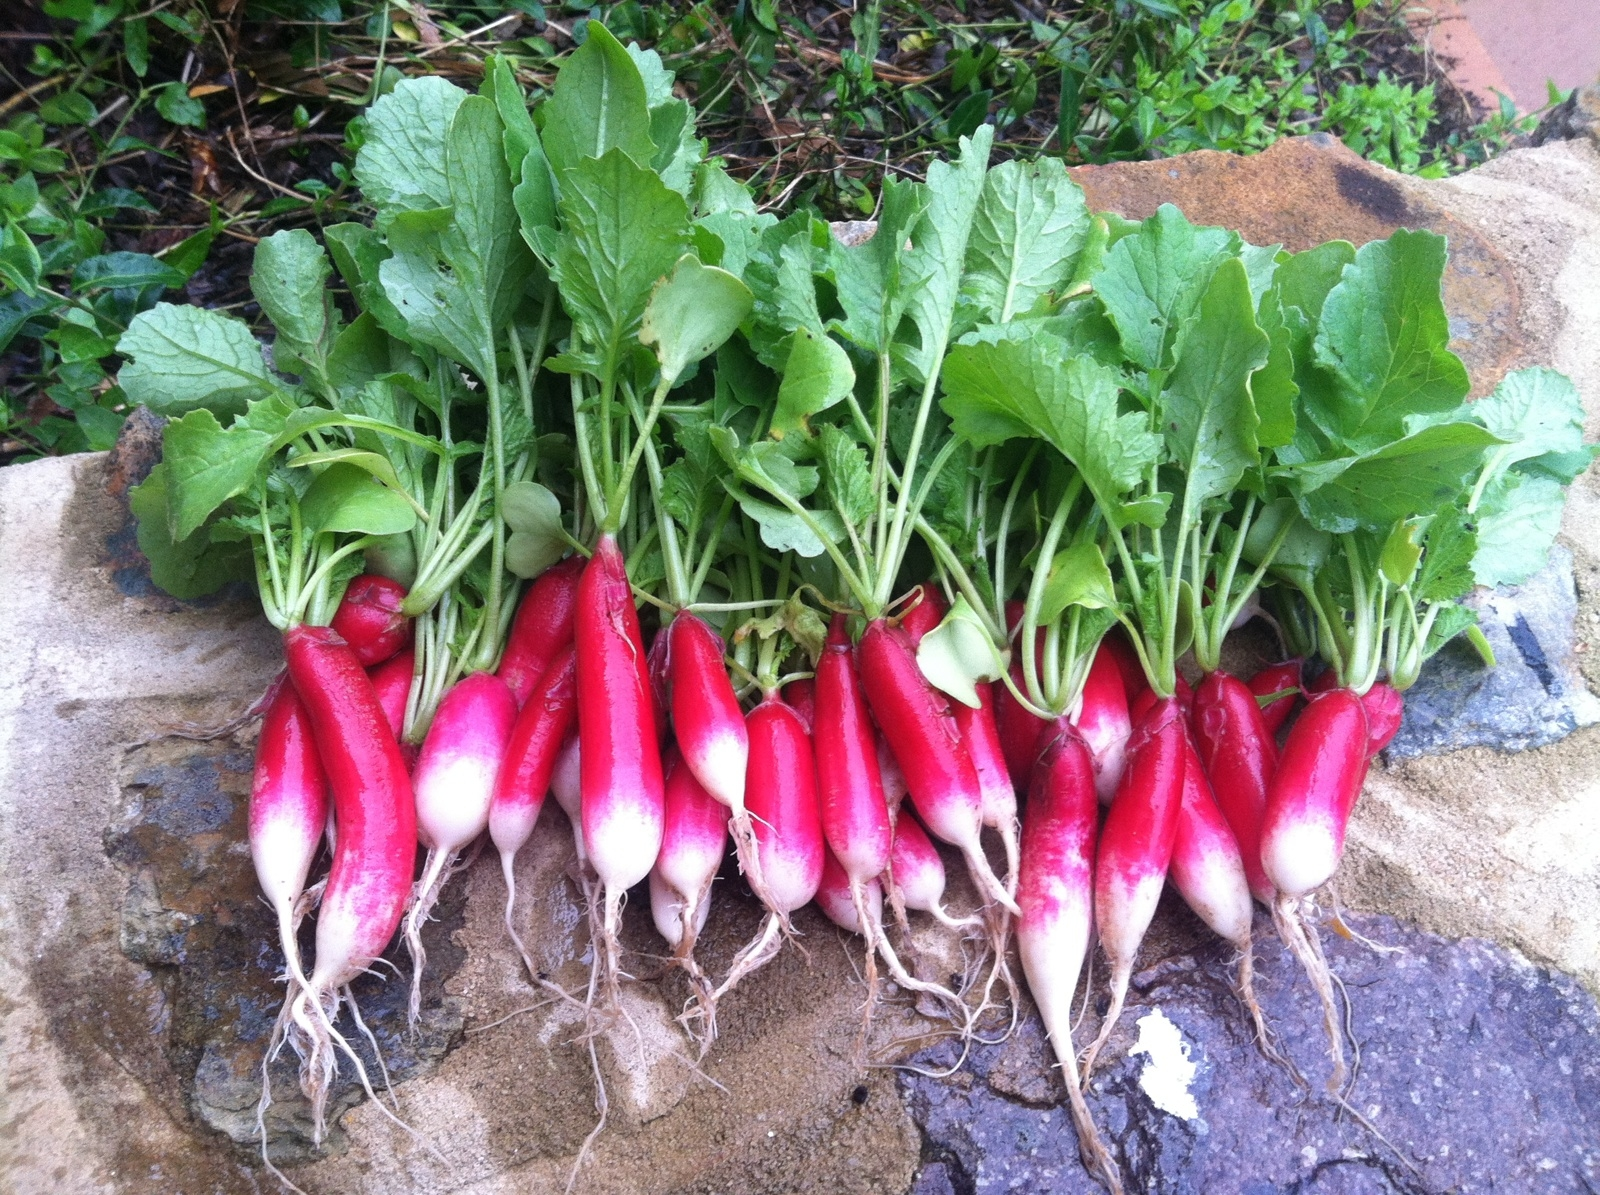 french-breakfast-radish-seeds-edmonton